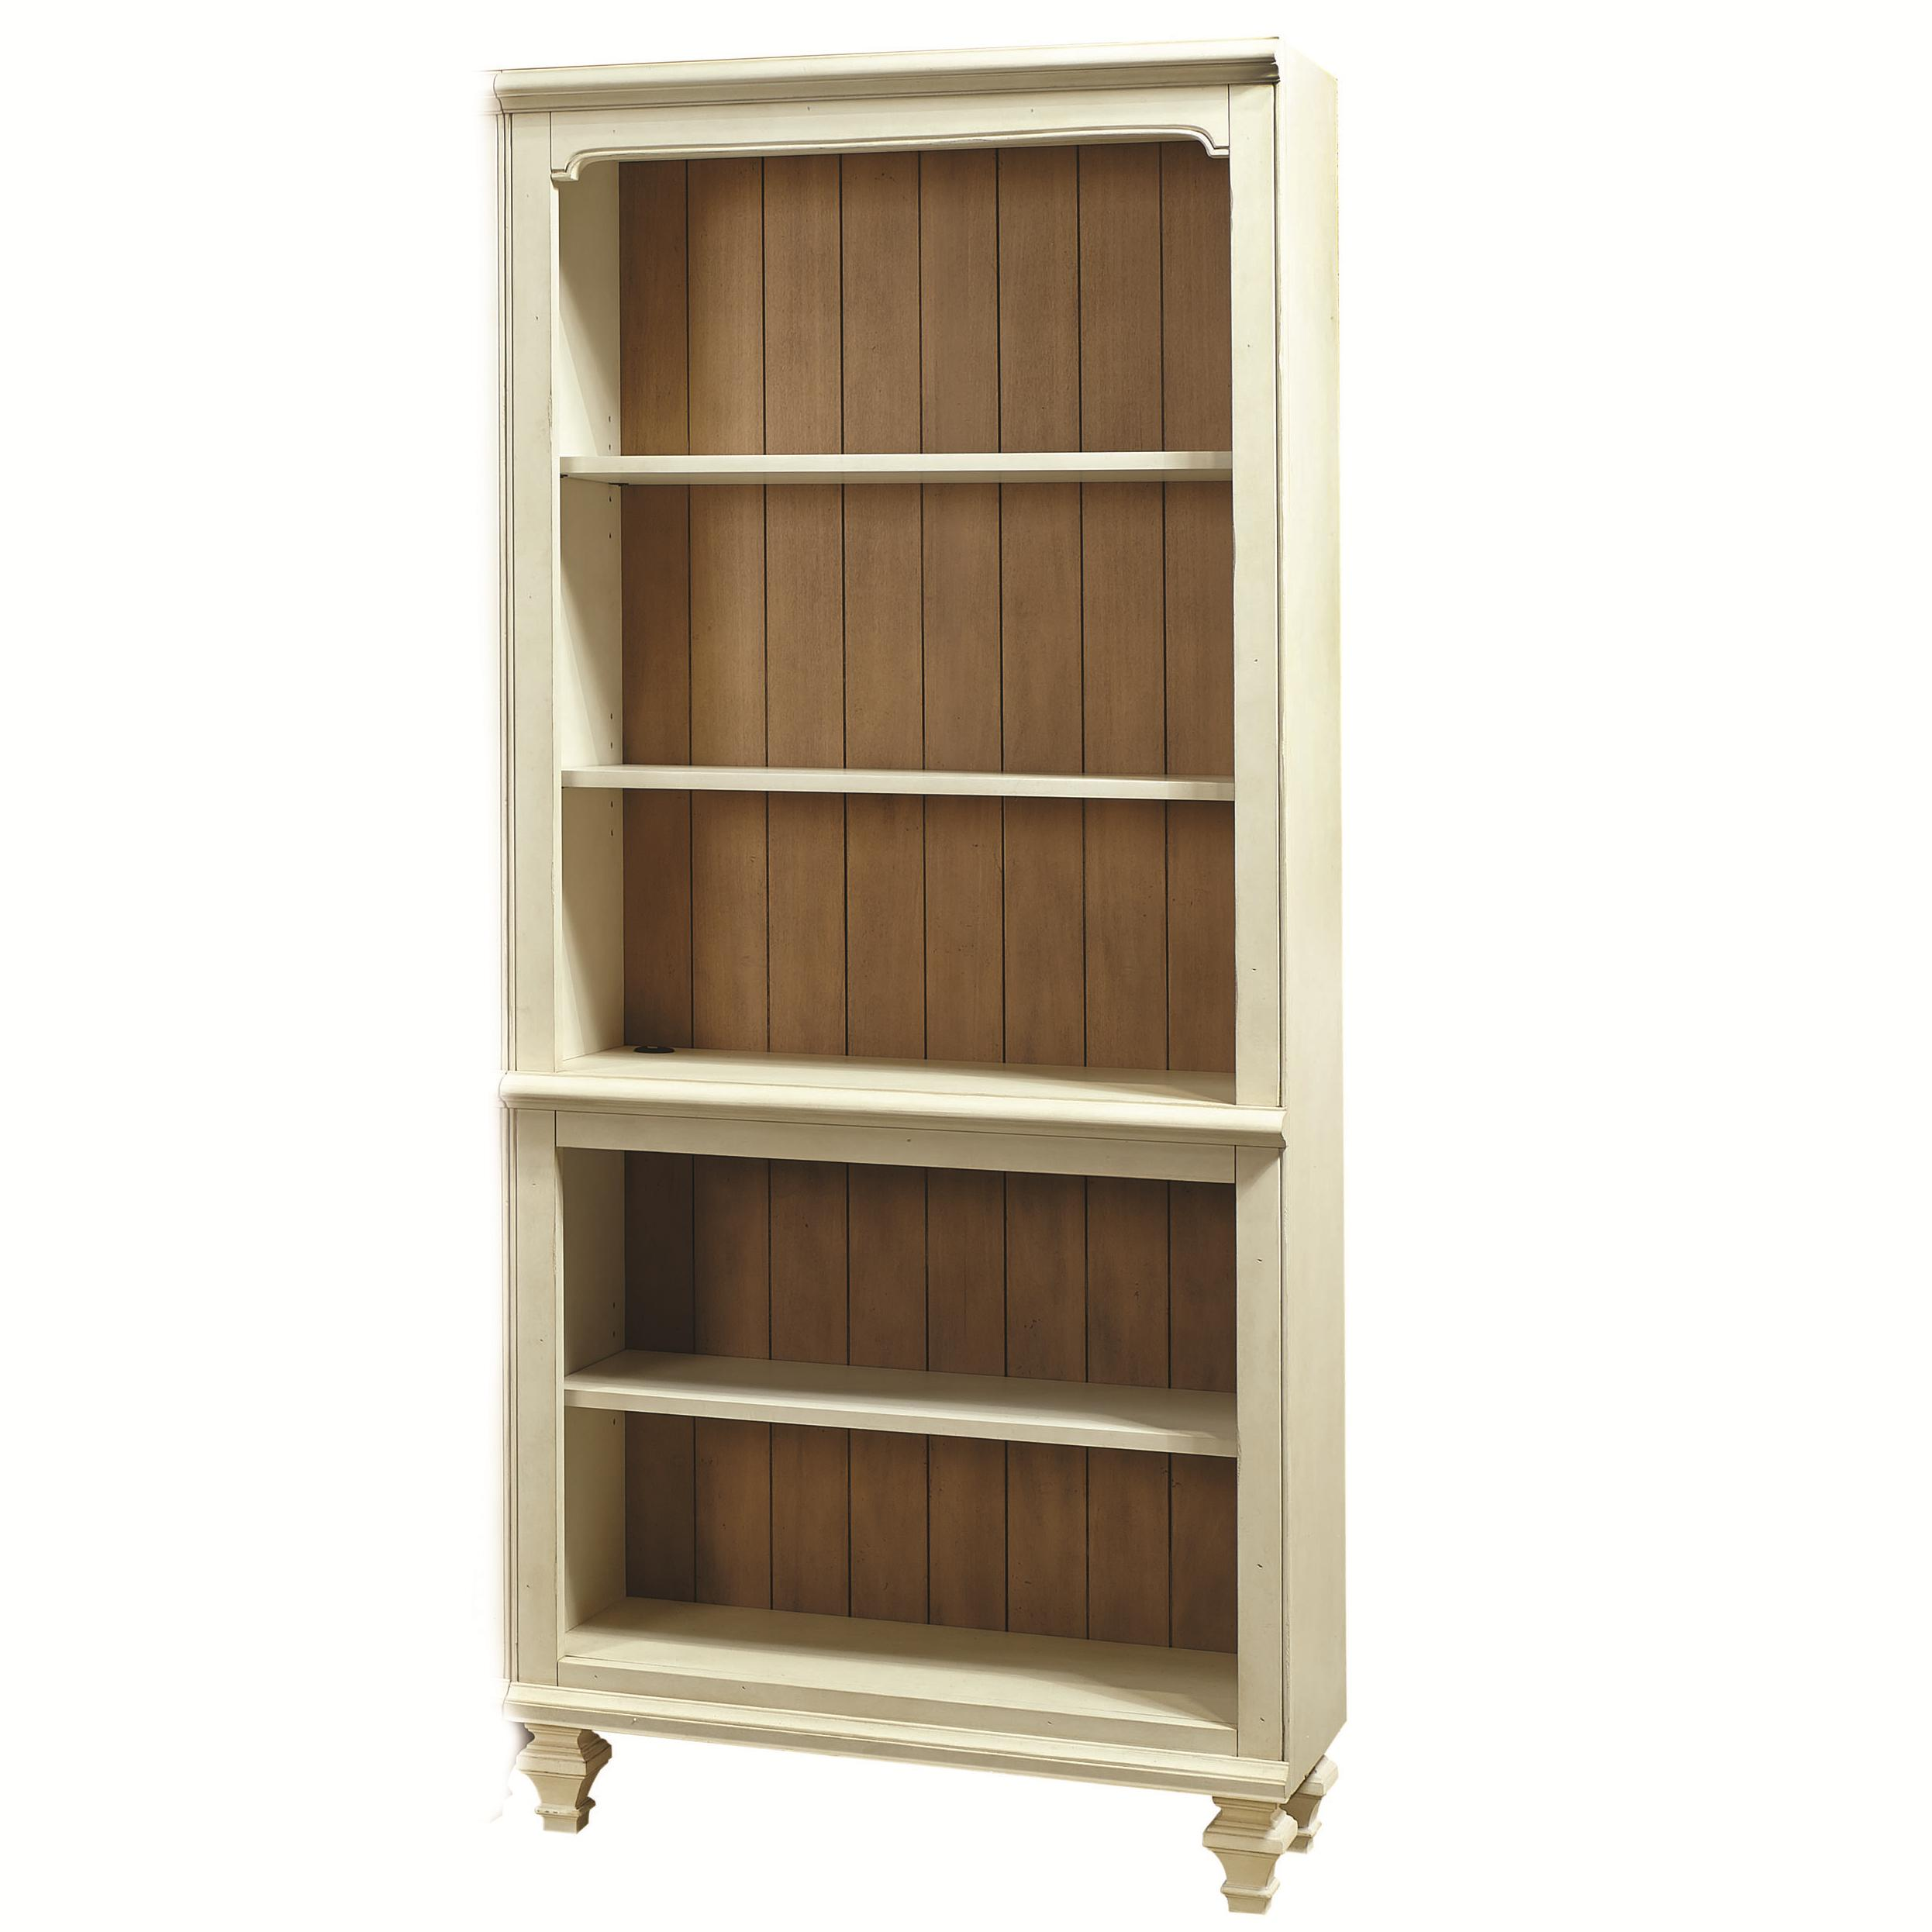 Aspenhome Cottonwood Bookcase - Item Number: I67-333